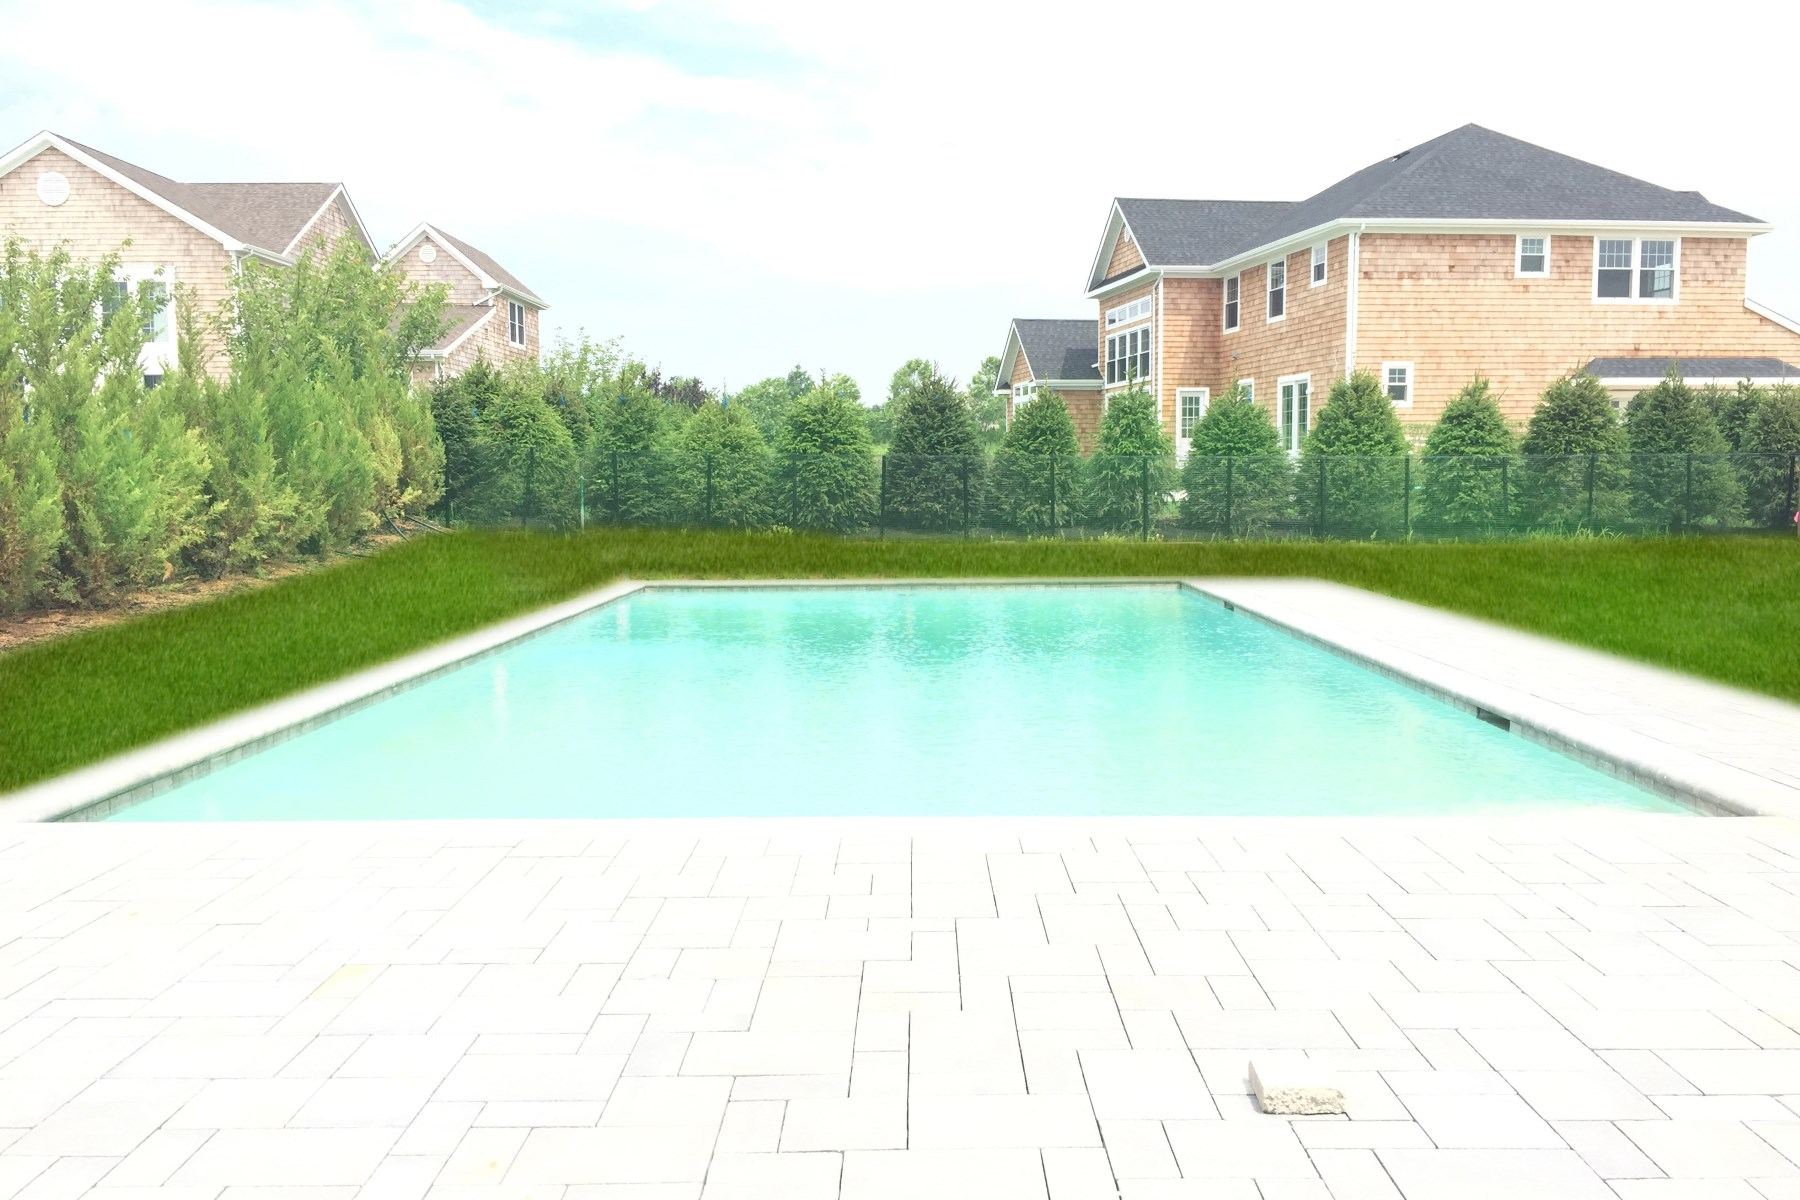 Villa per Vendita alle ore Southampton Meadows Estate - M Model 23 Summer Drive Lot 10 M-Model Southampton, New York, 11968 Stati Uniti